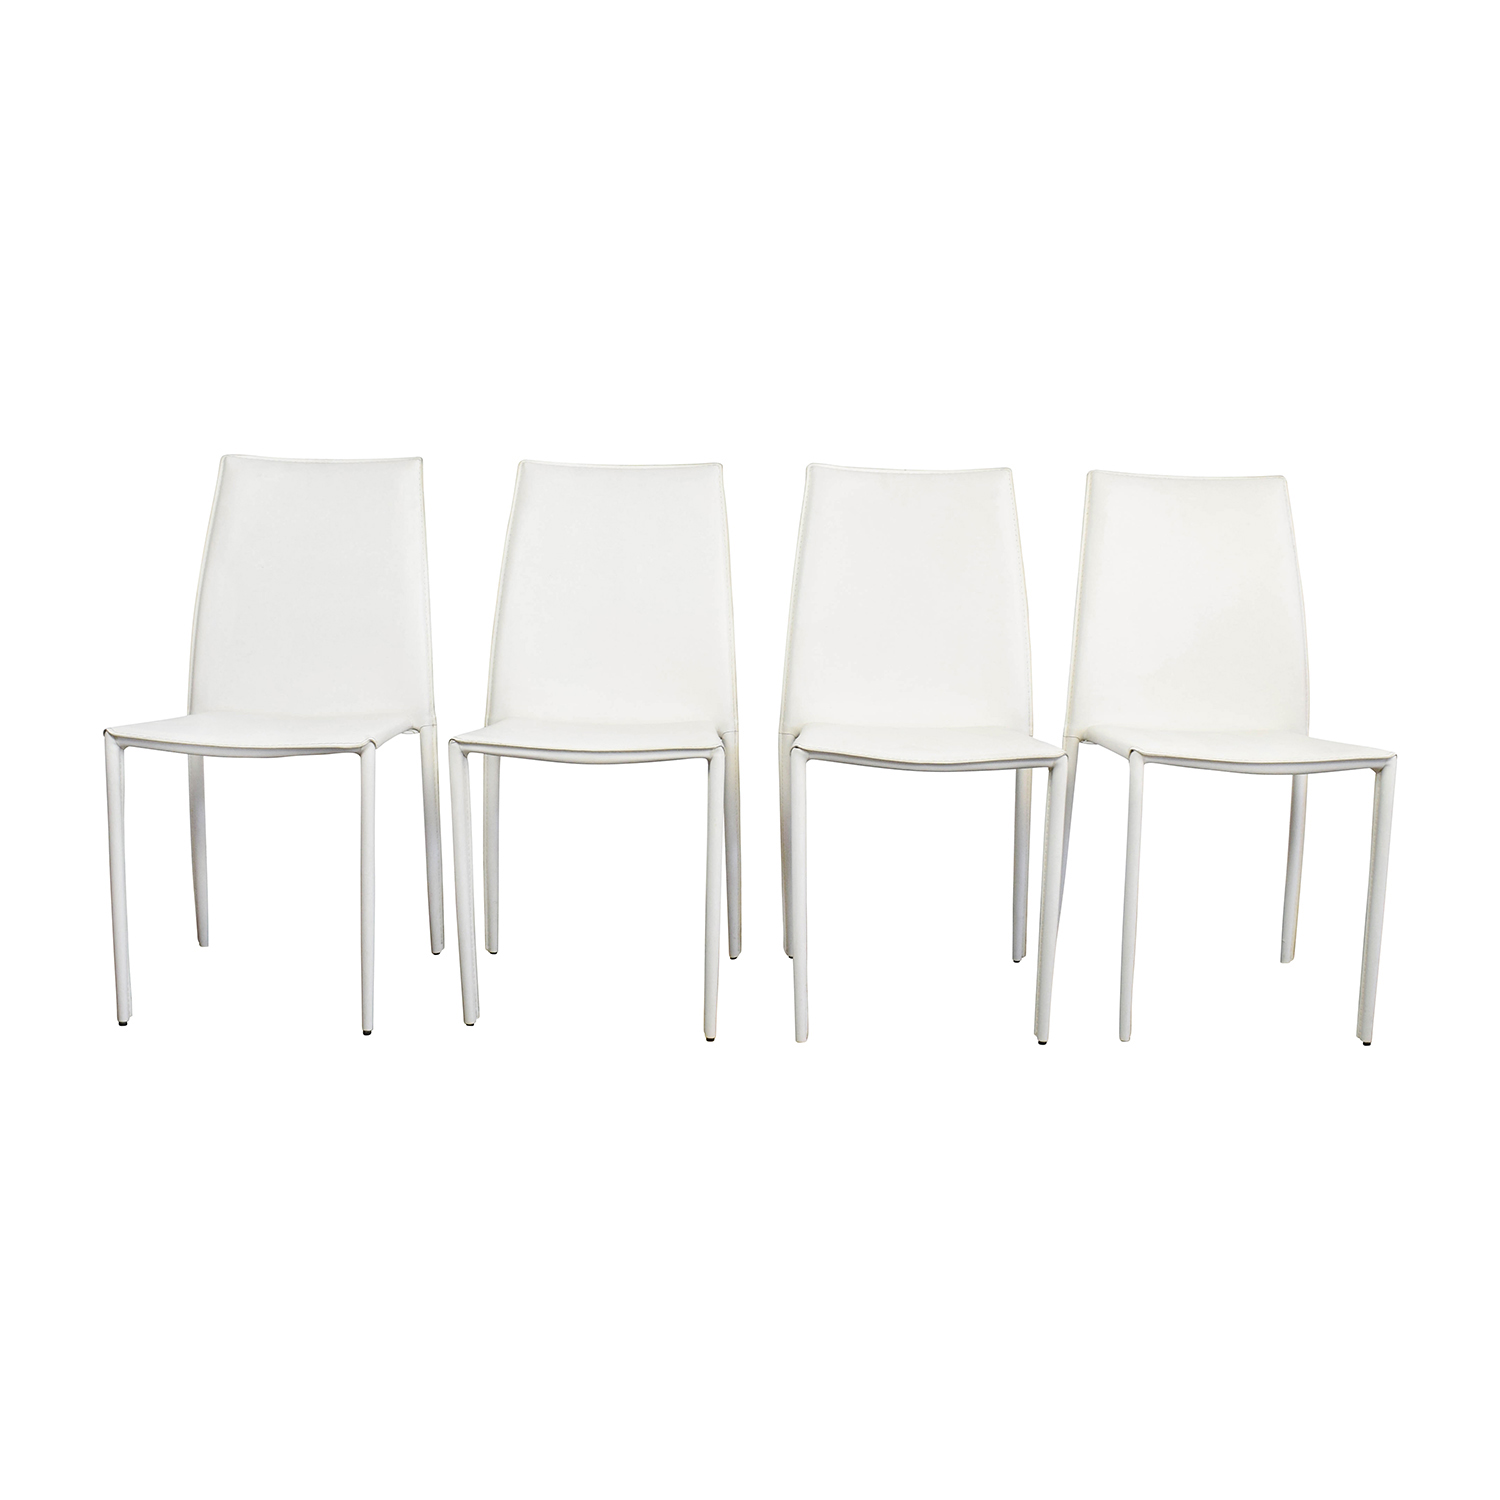 all modern leather dining chairs rolling chair parts 77 off white